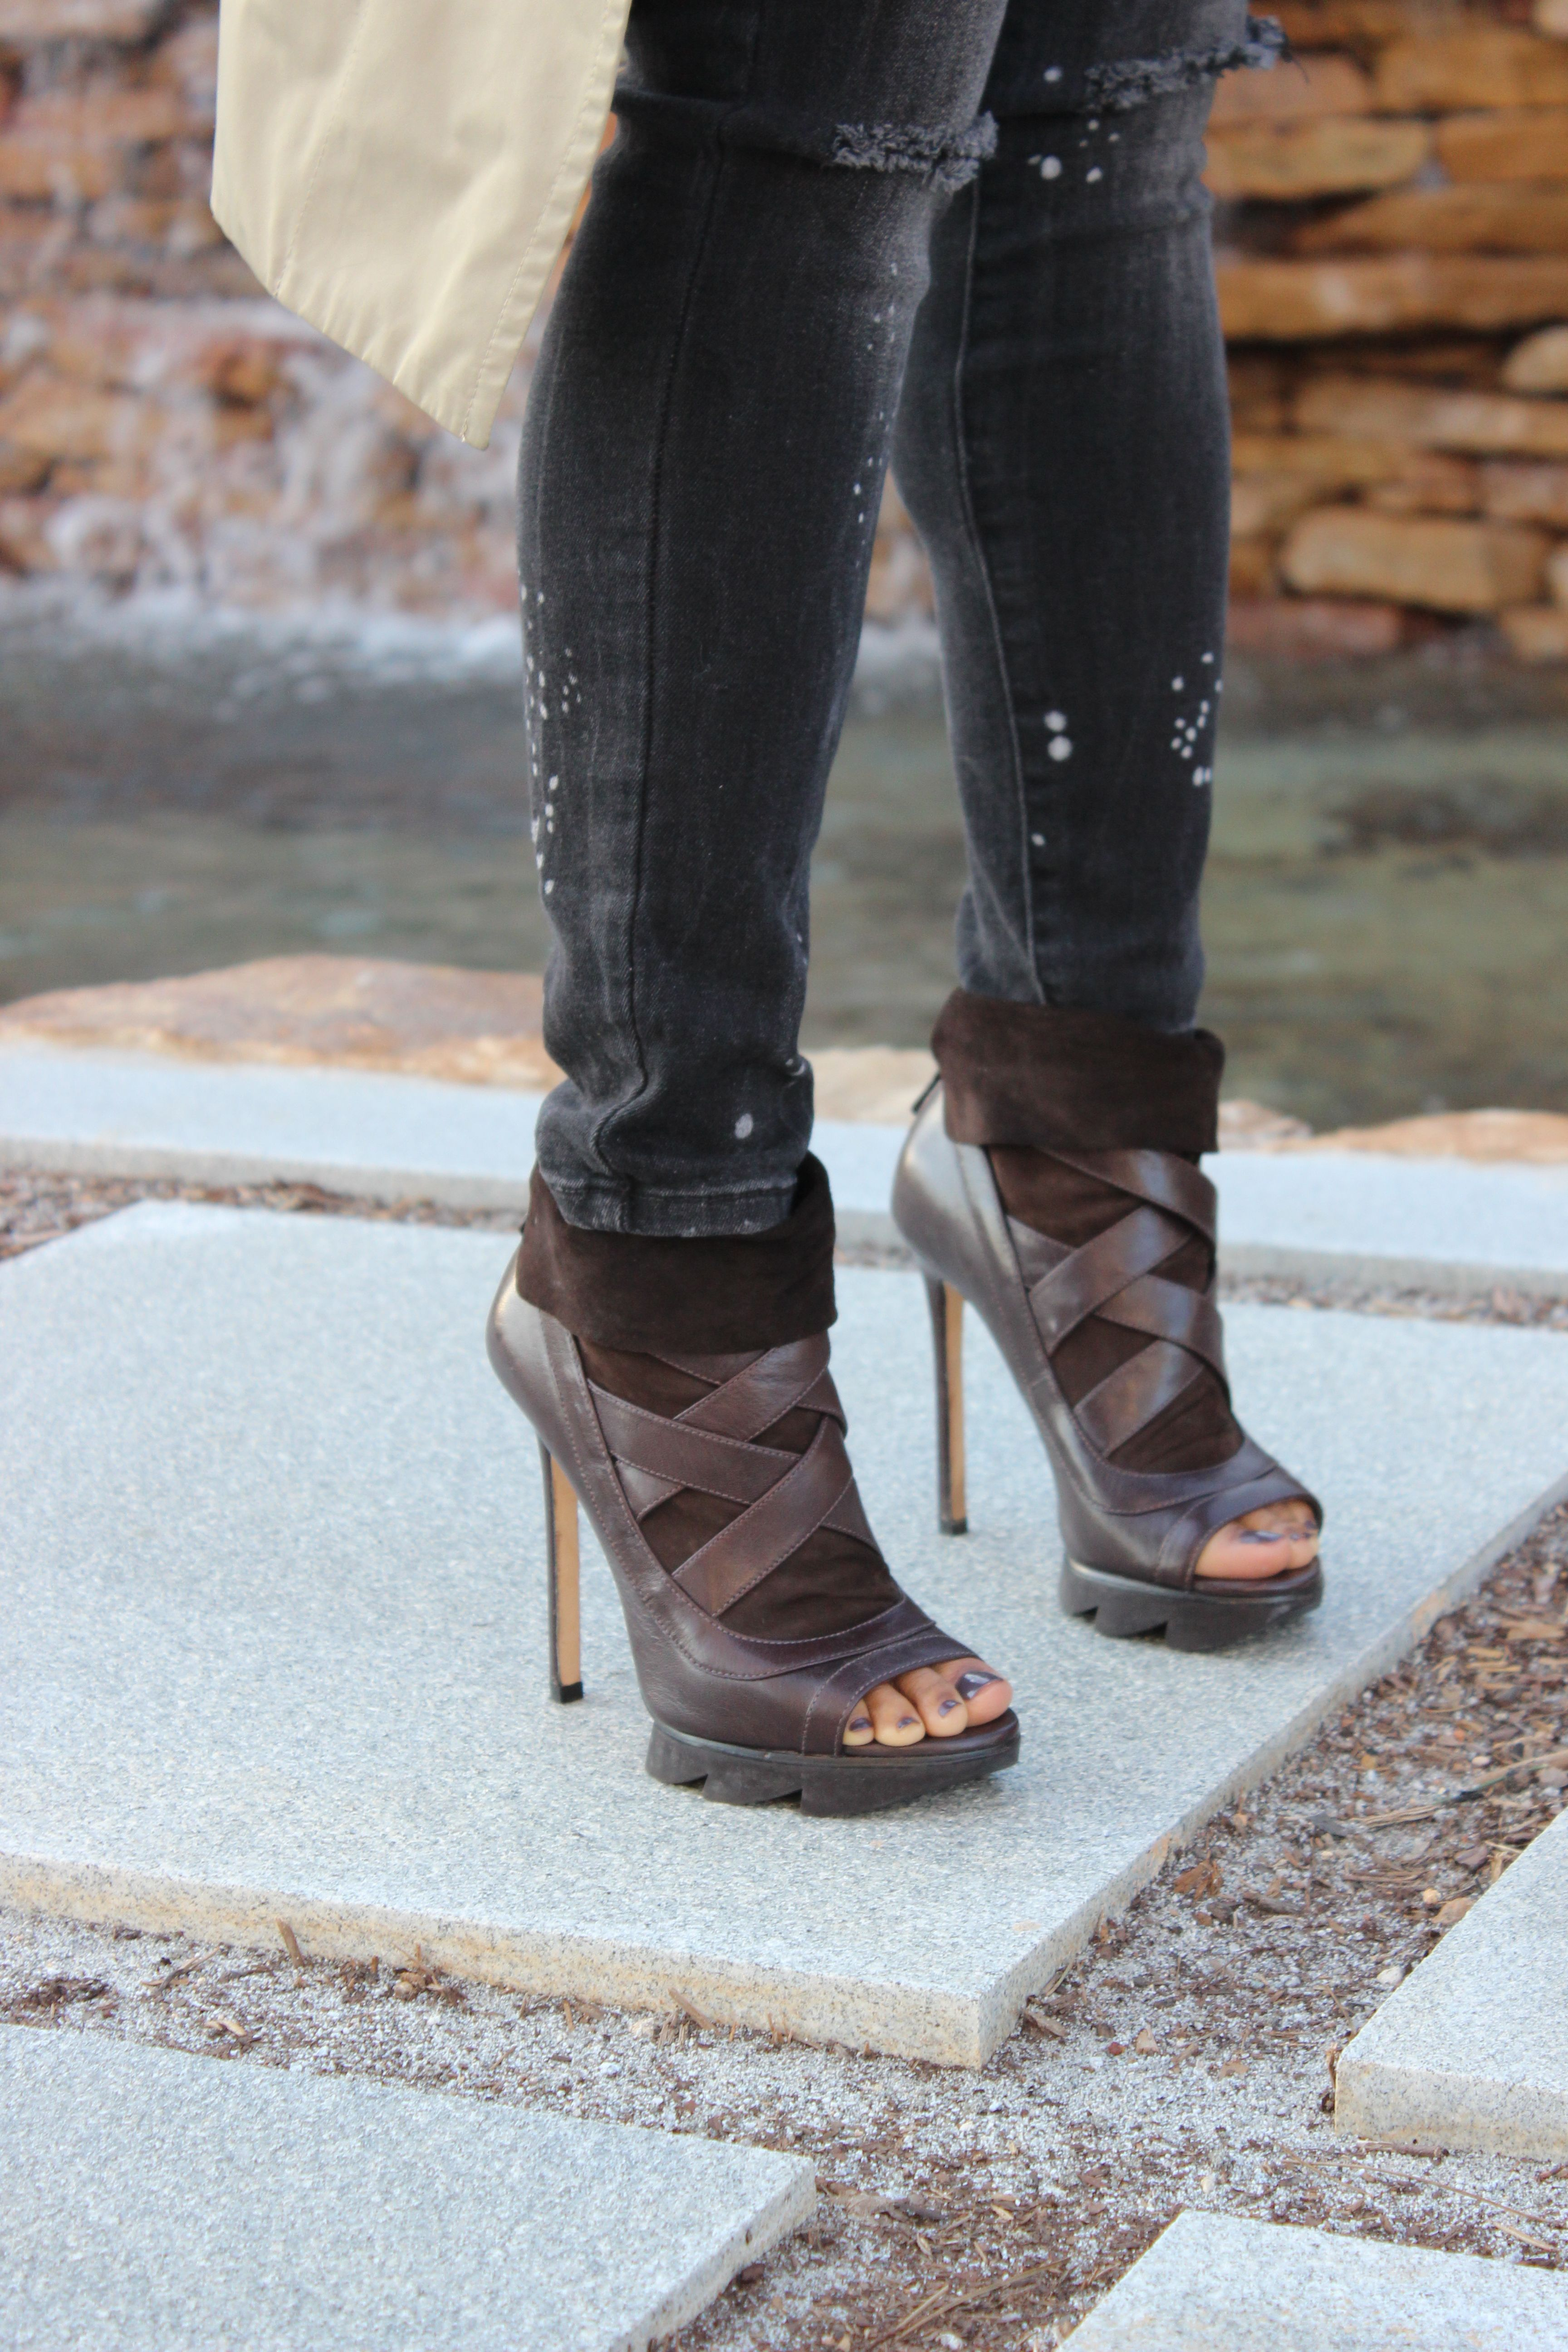 Peep-toe booties...the perfect transitional shoe for spring & fall.